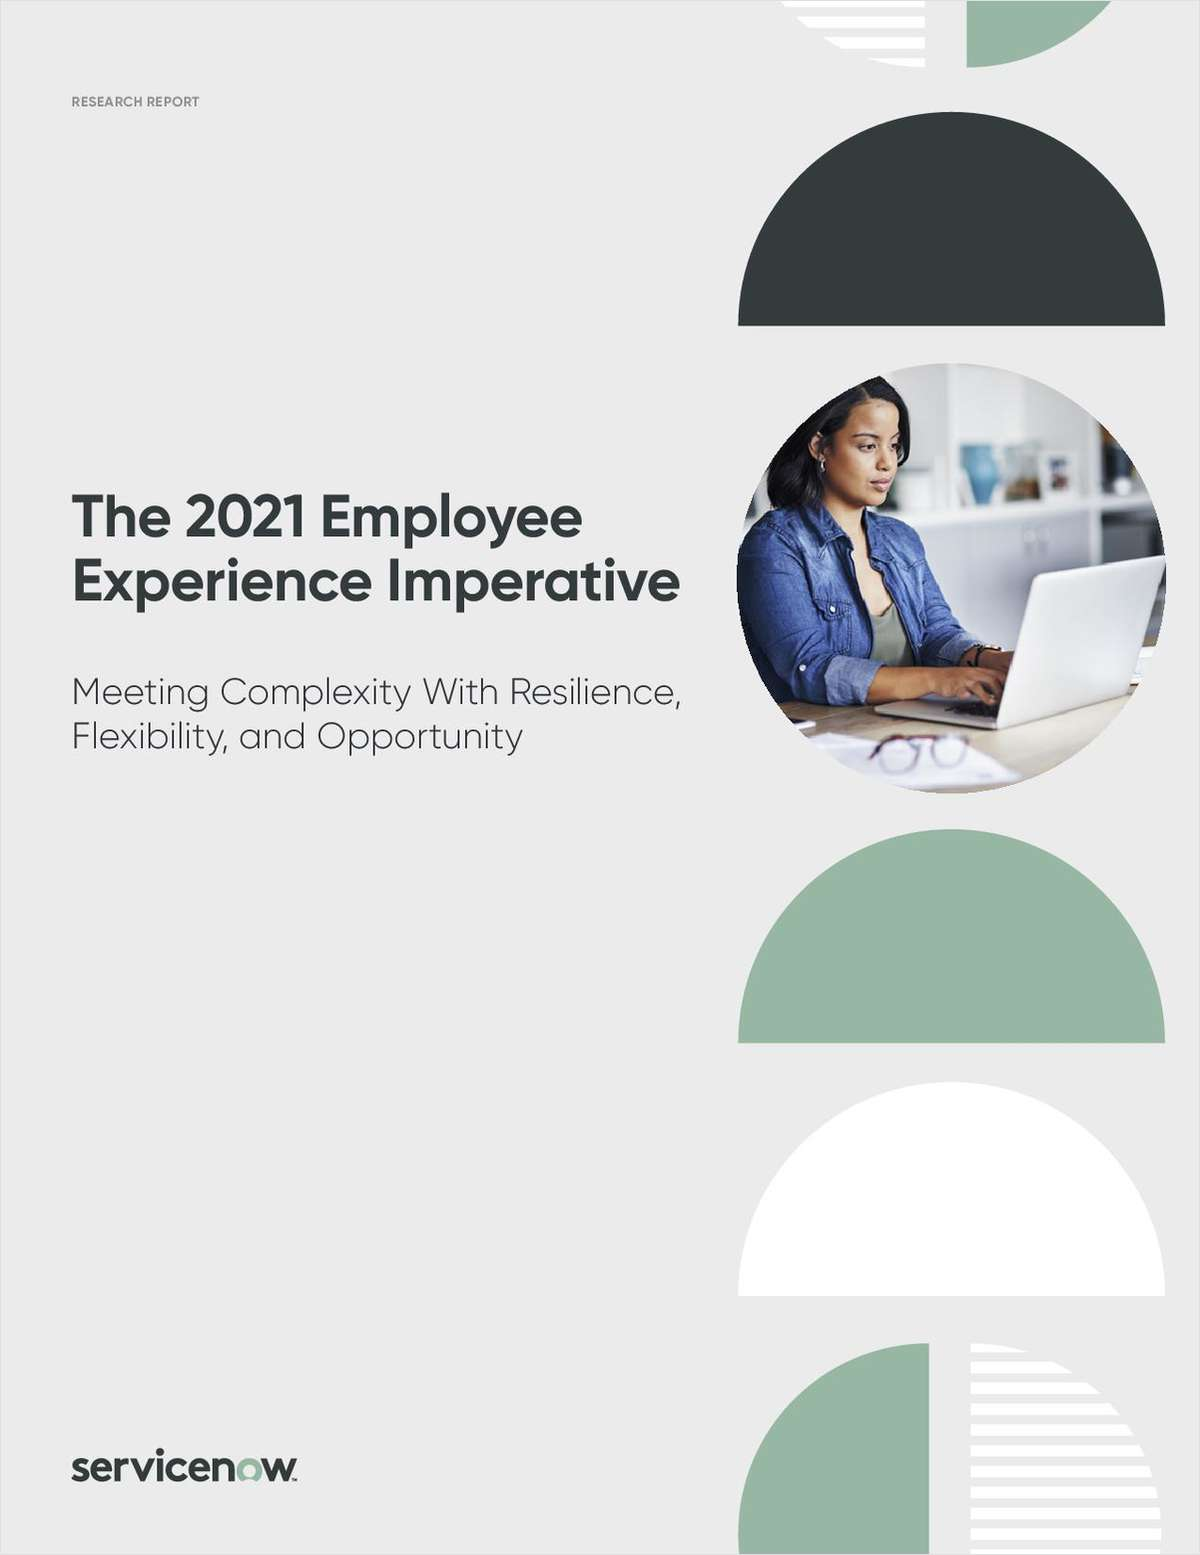 The Employee Experience Imperative